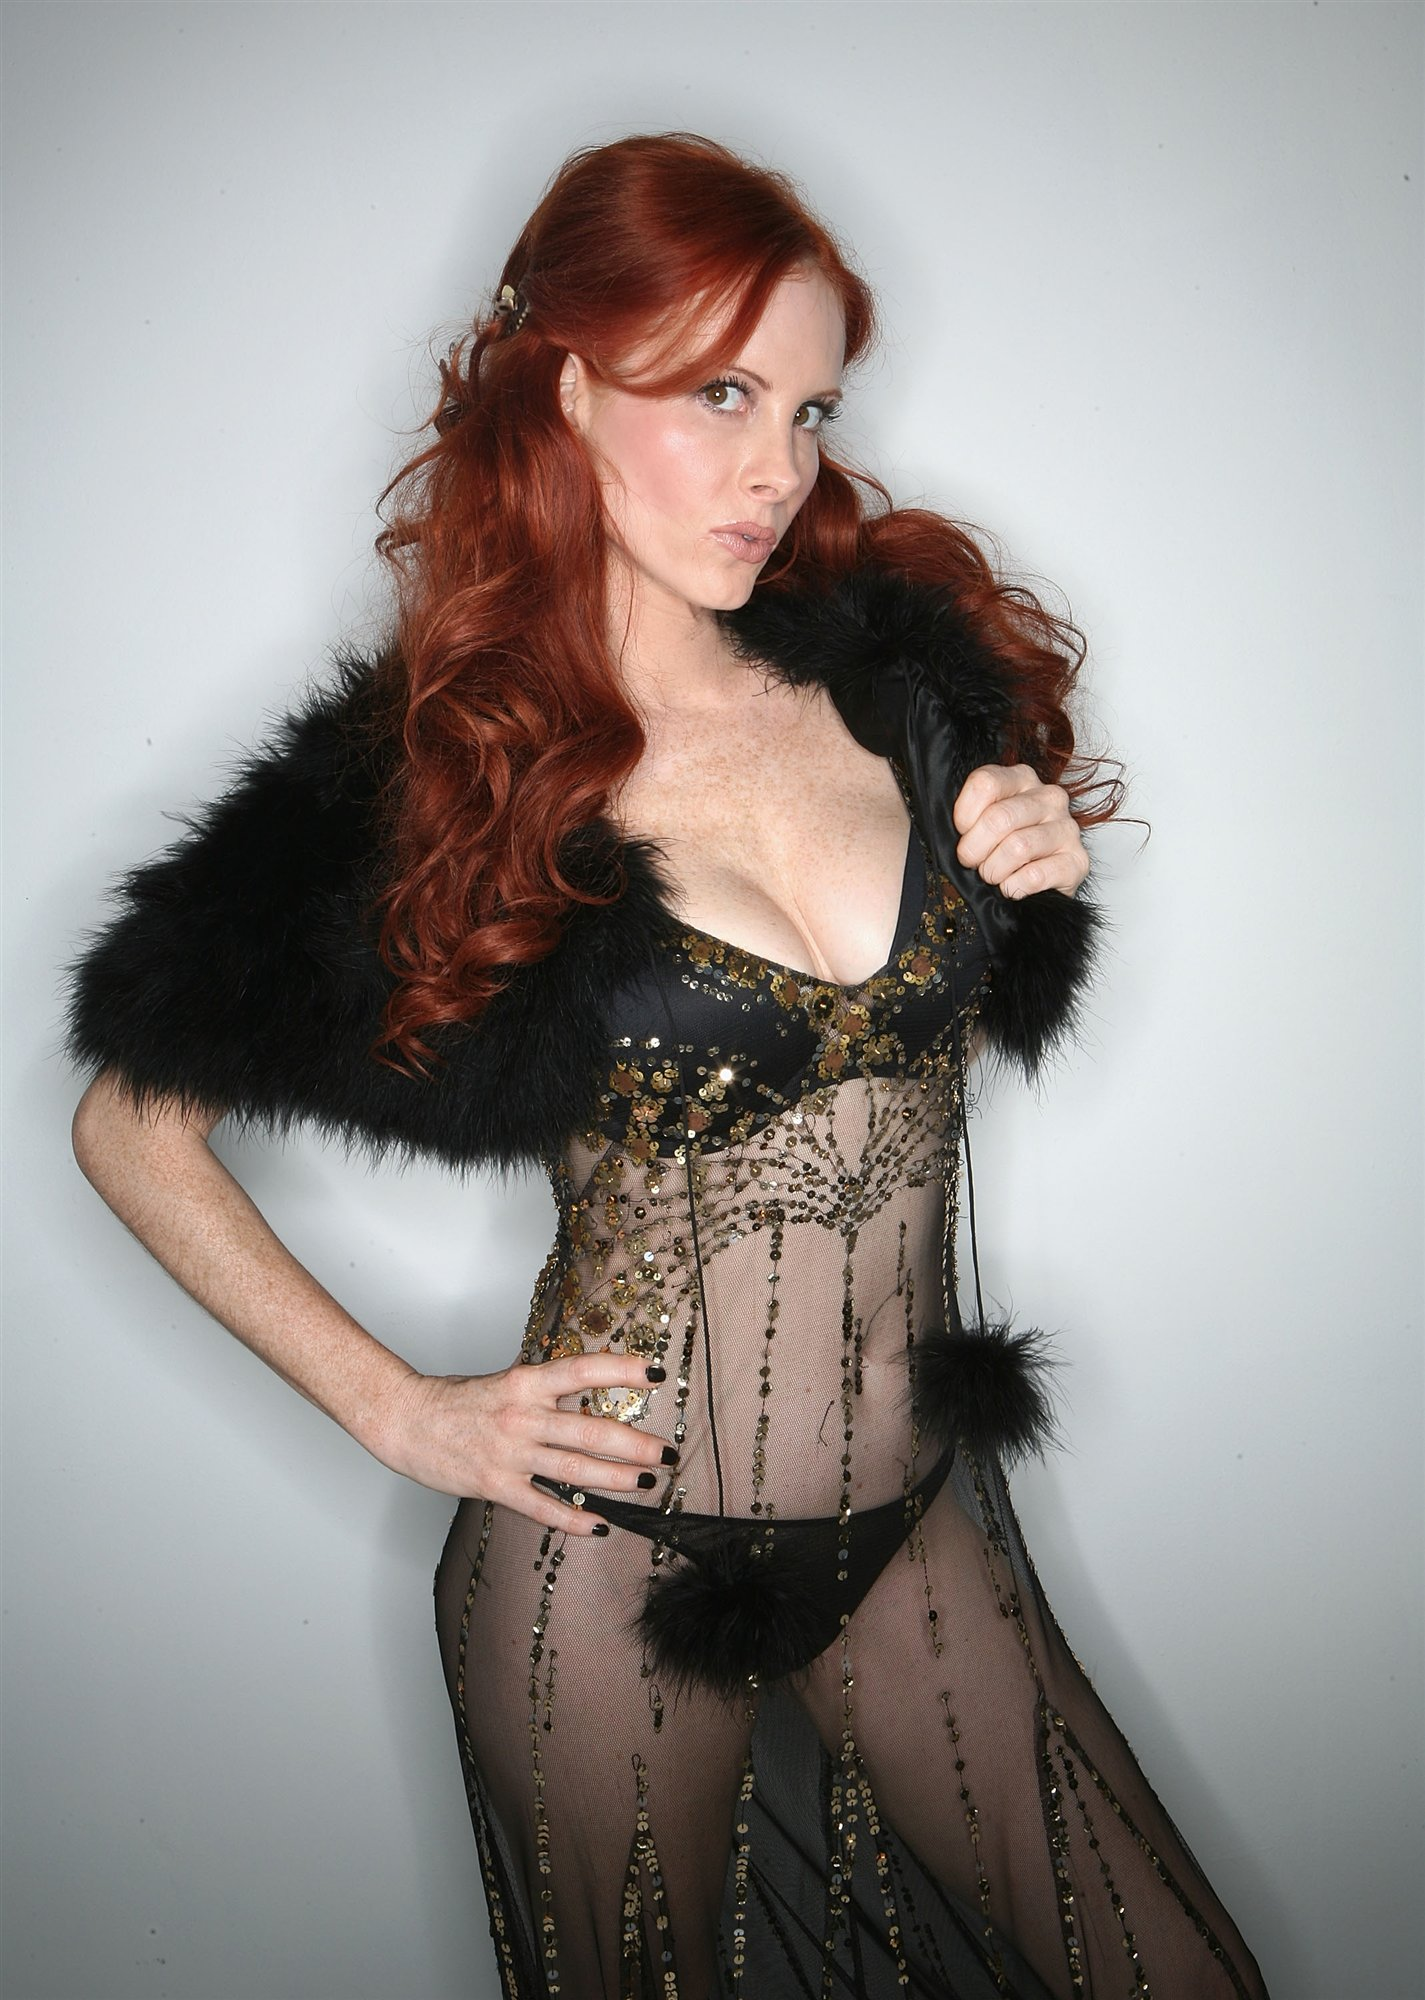 Phoebe Price Paris Photo Shoot - Phoebe price pics 4